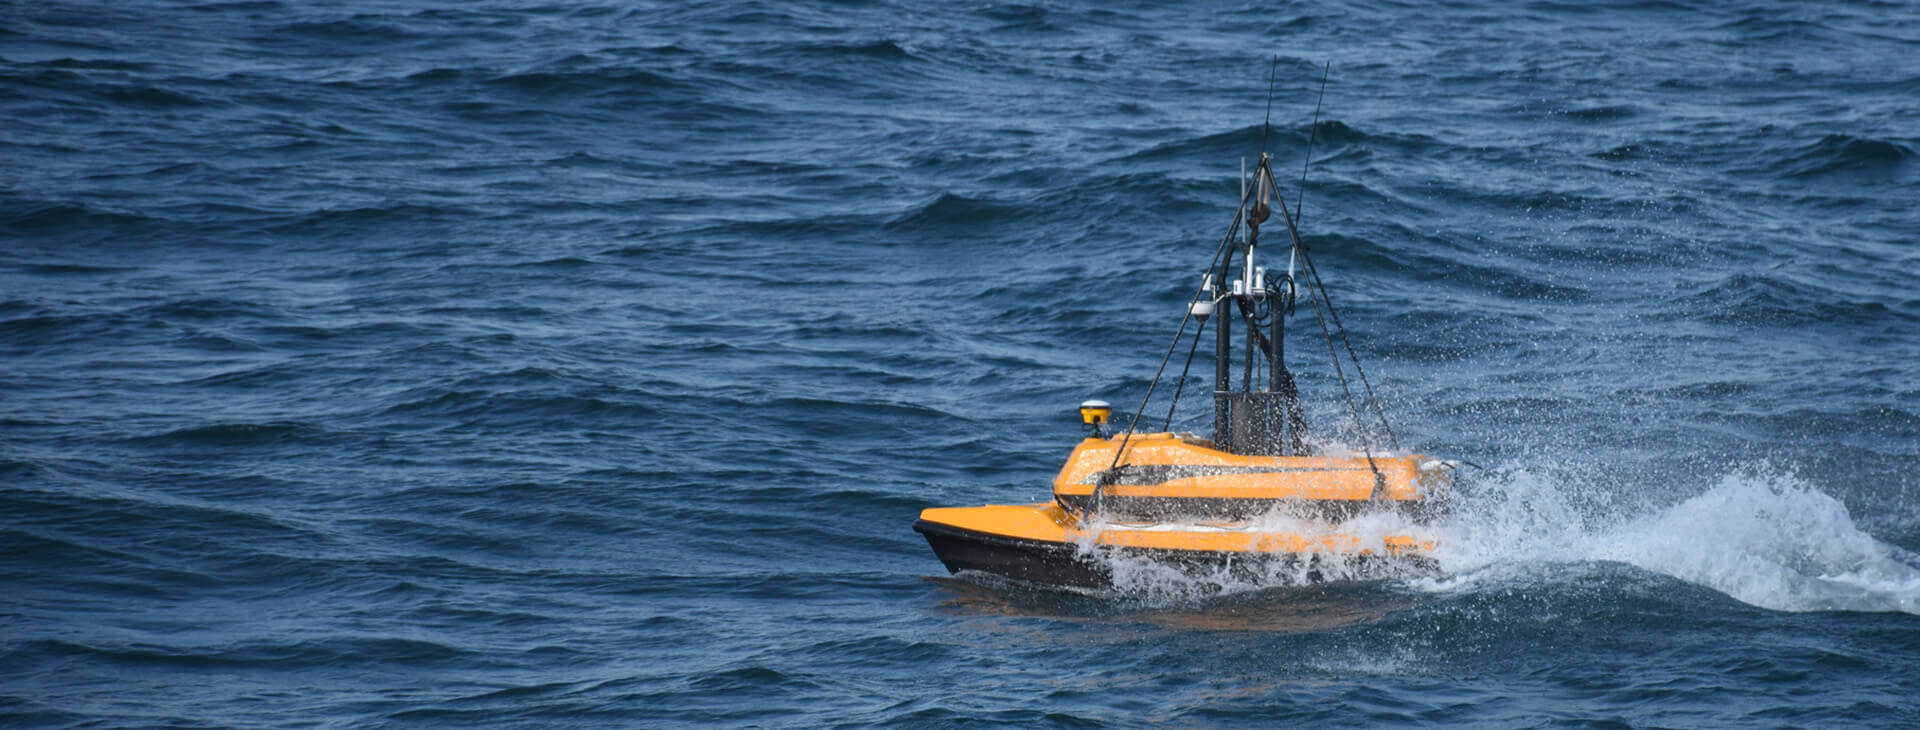 Unmanned surface vehicle ME120 sailing in high speed on the sea